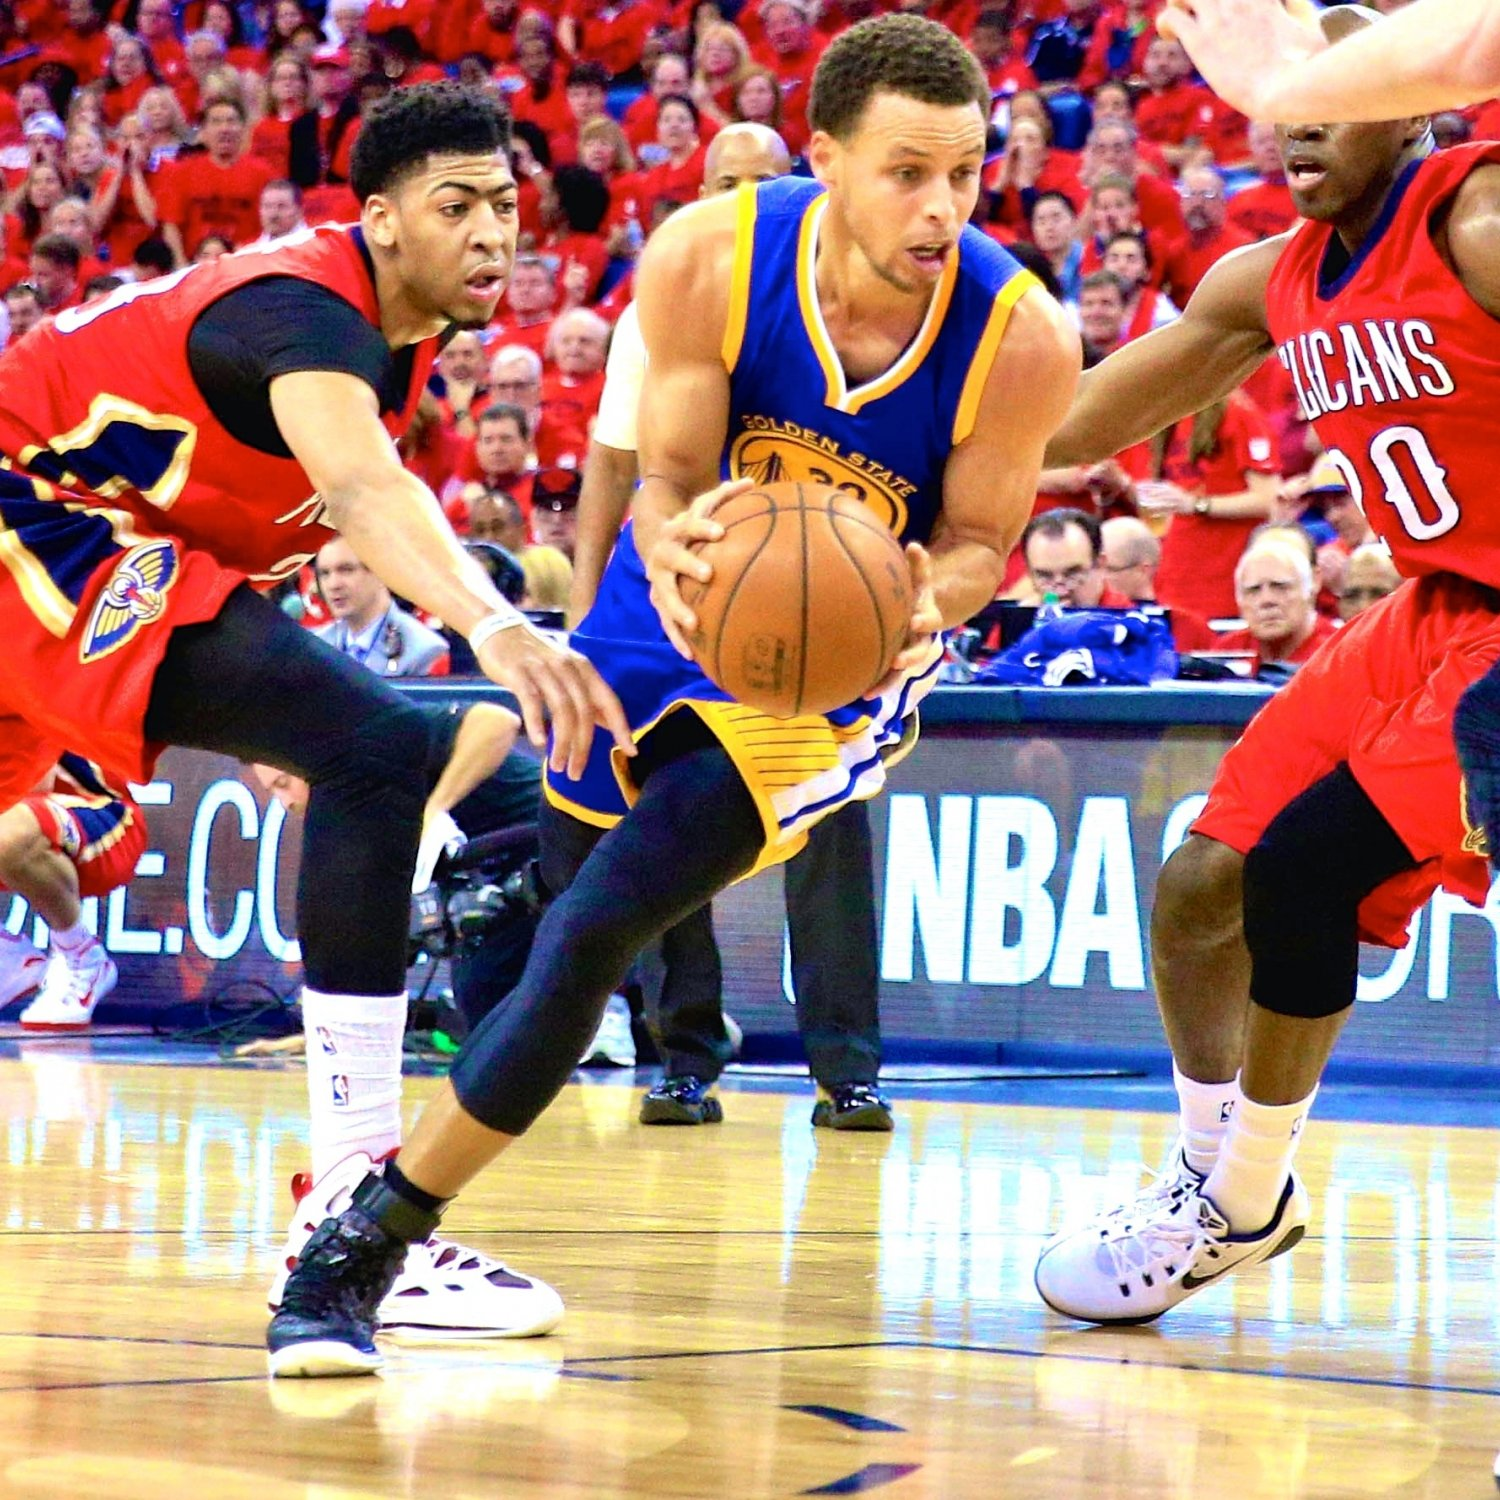 Rockets Vs Warriors Twitter Reaction: Warriors Vs. Pelicans: Game 3 Score And Twitter Reaction